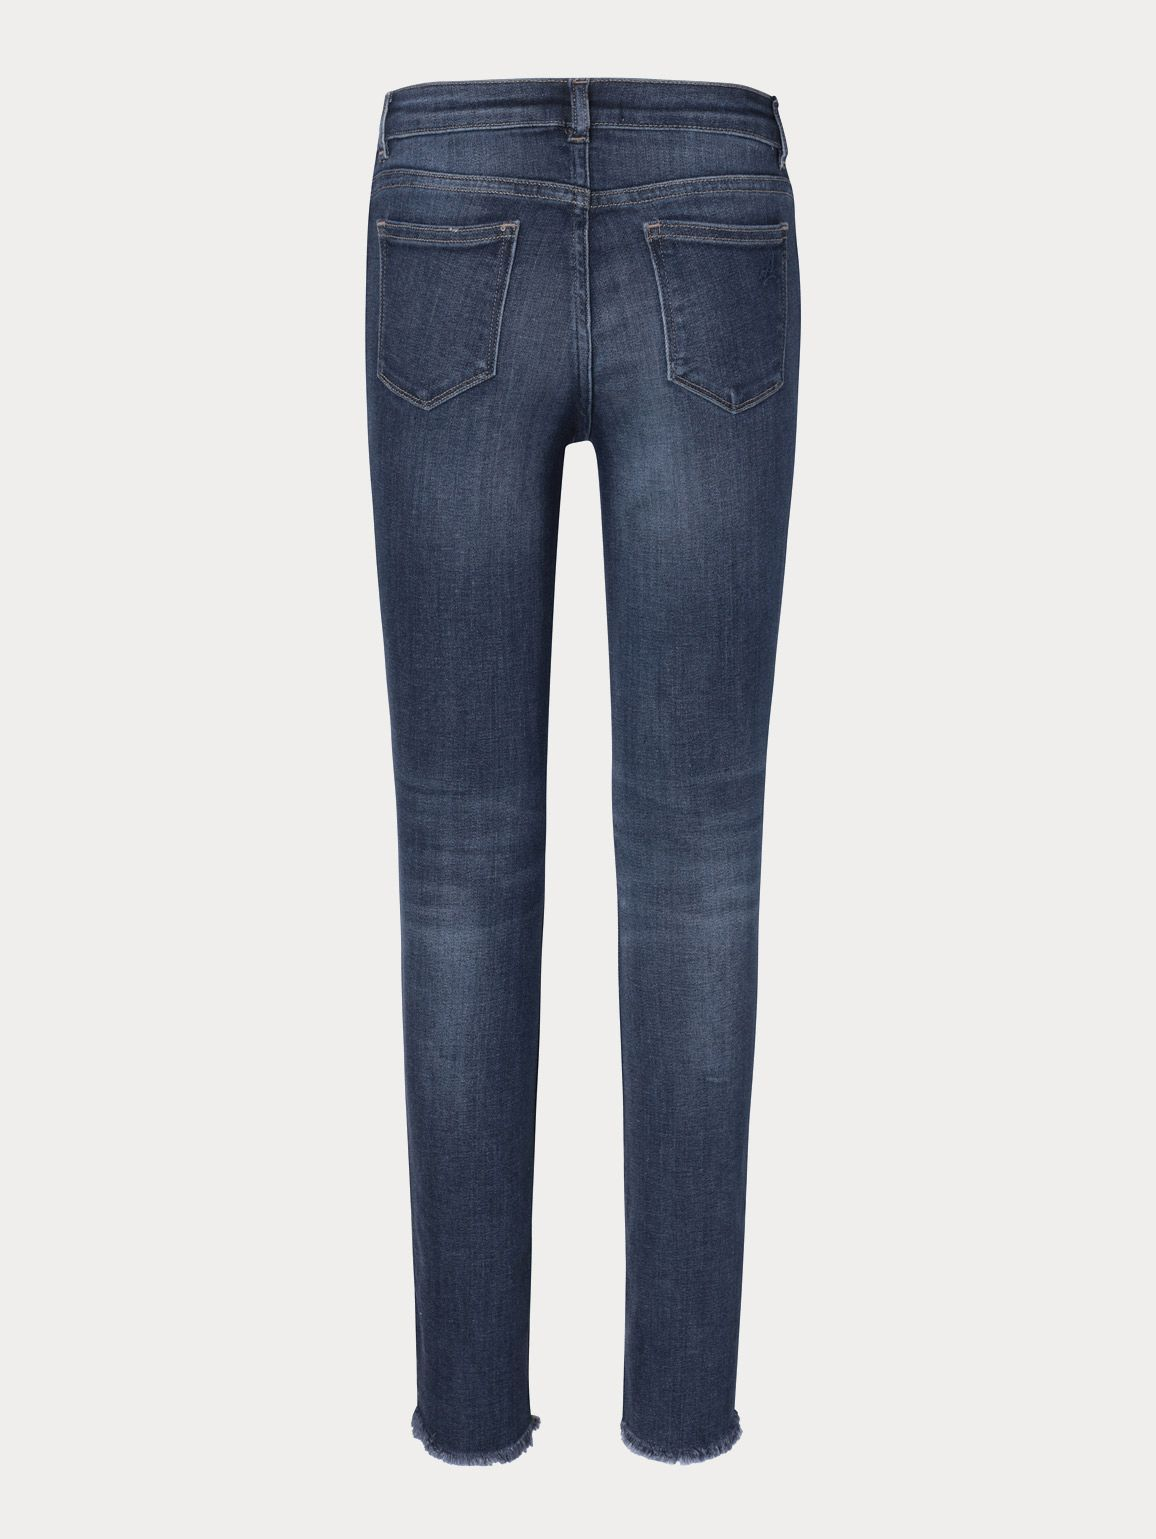 Girls - Chloe Skinny | Arcade - DL1961